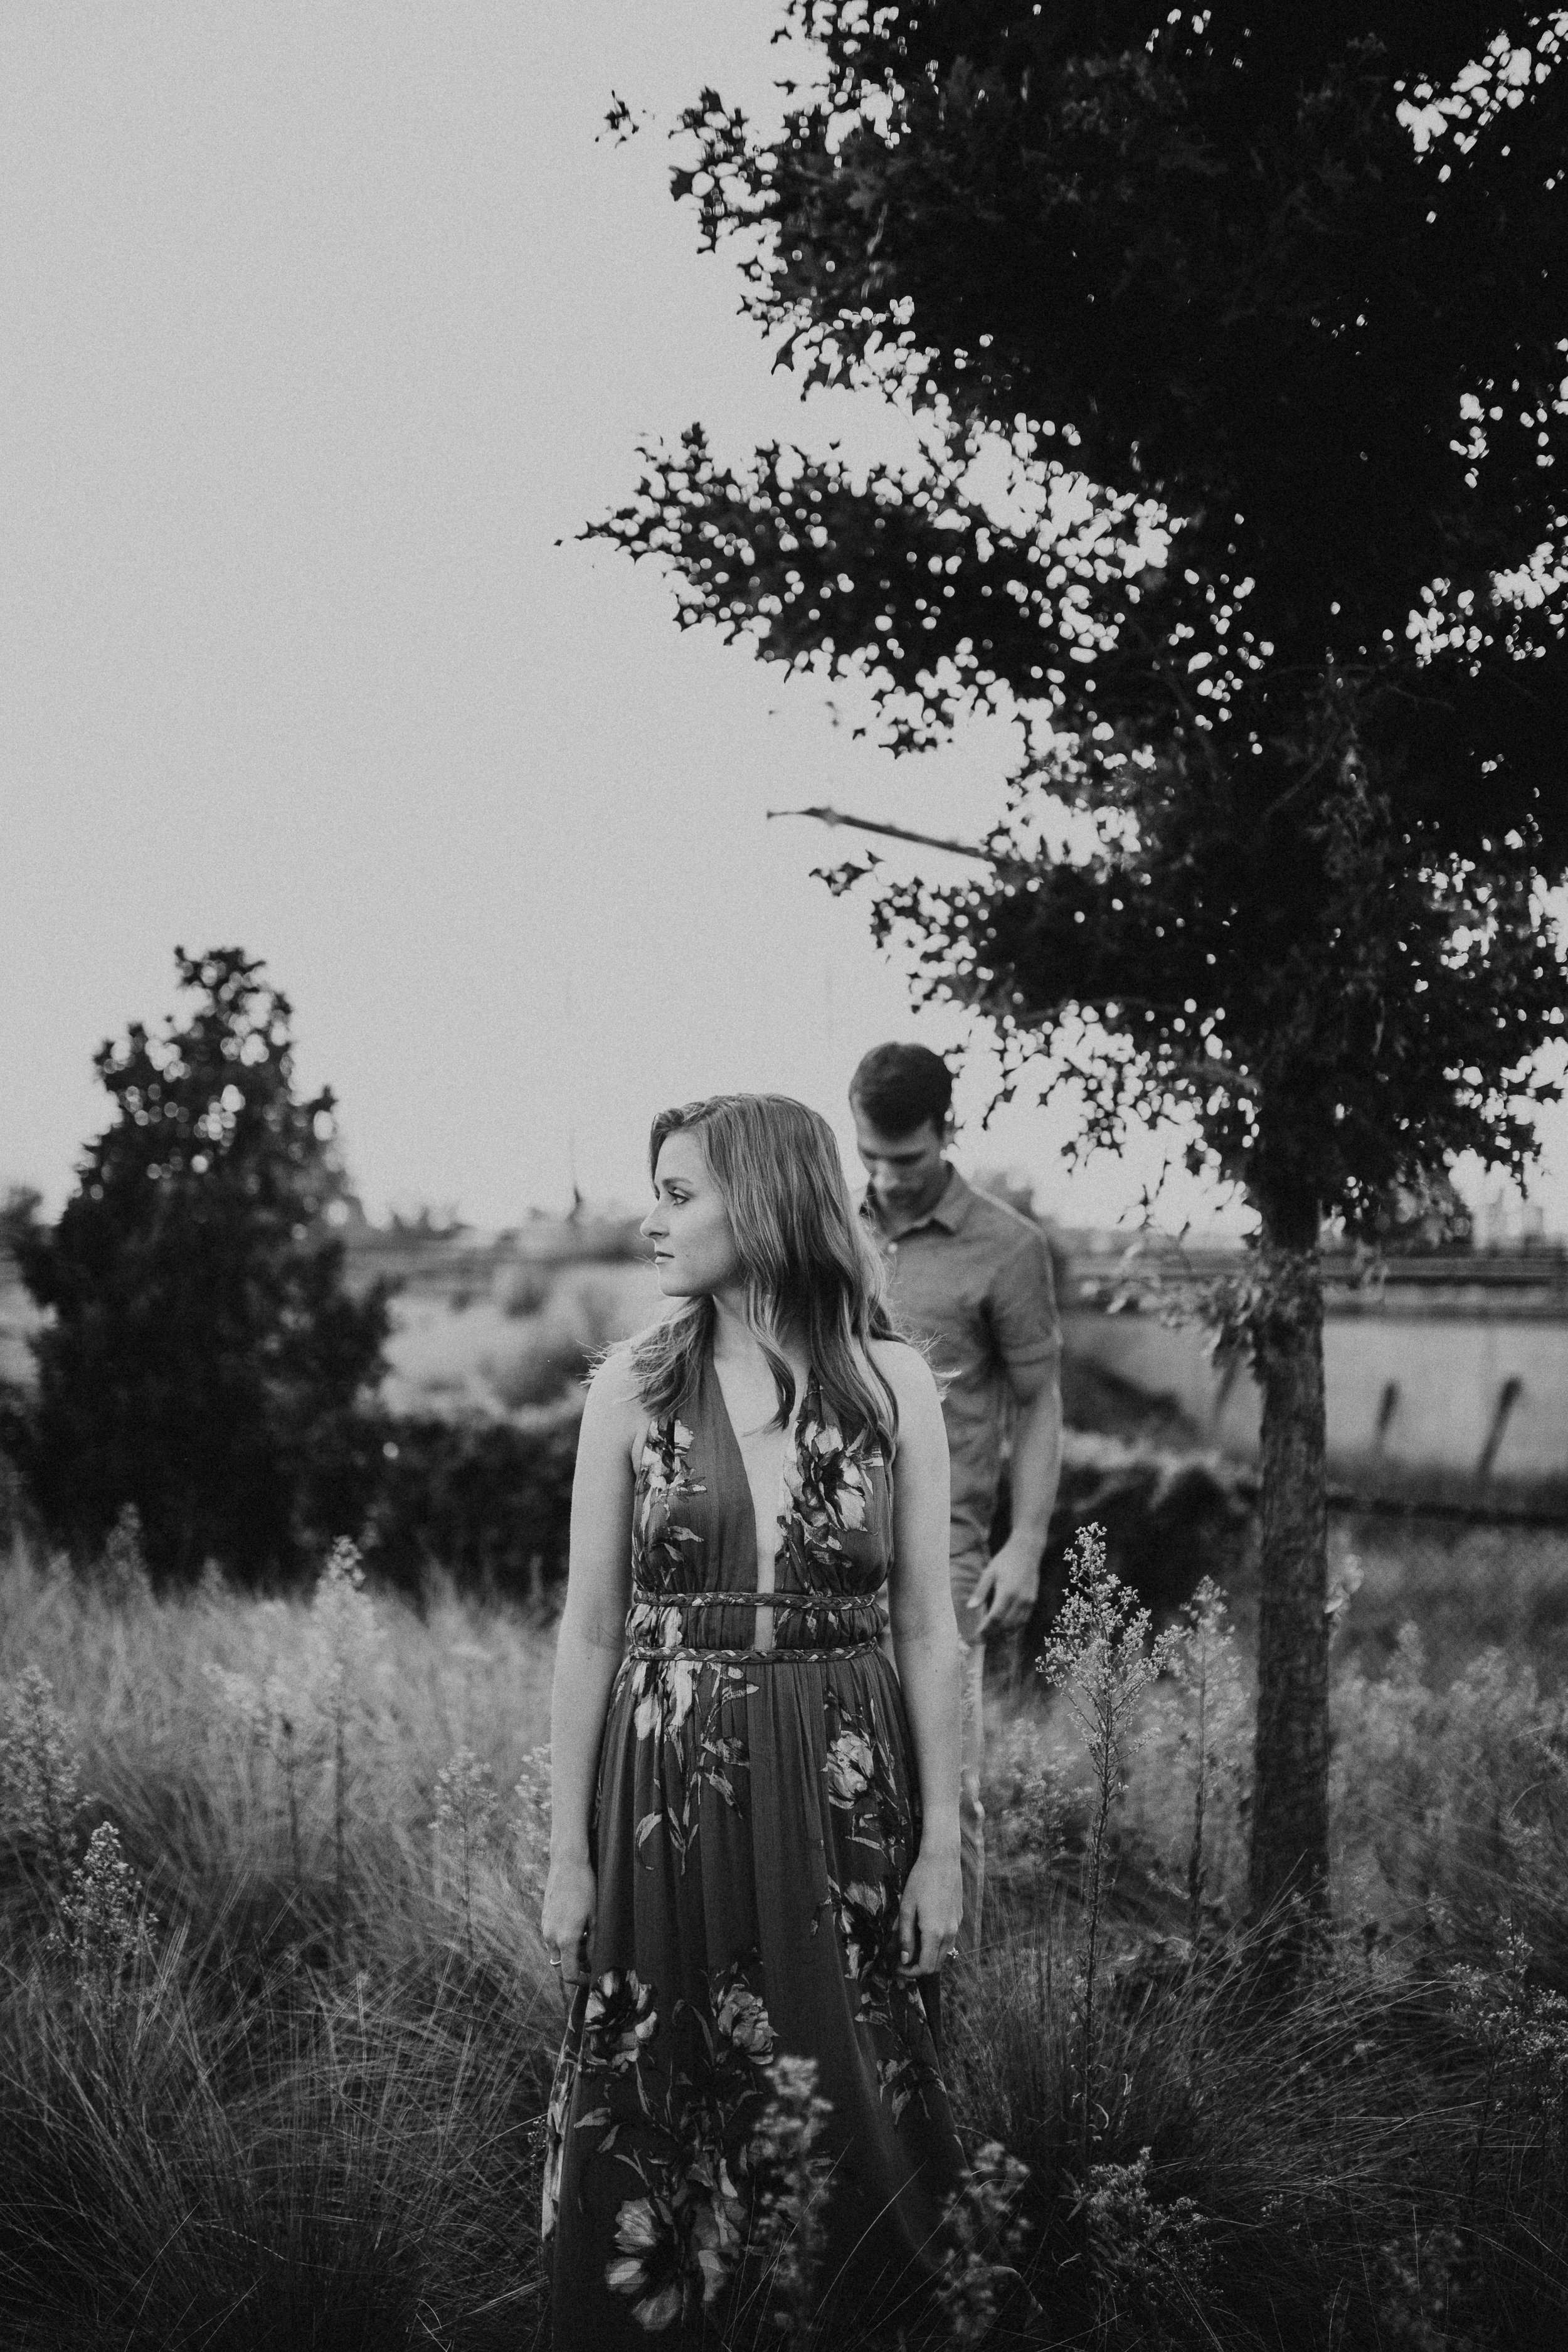 katie and brandon _ engagement session _ 08-5-1700212.jpg